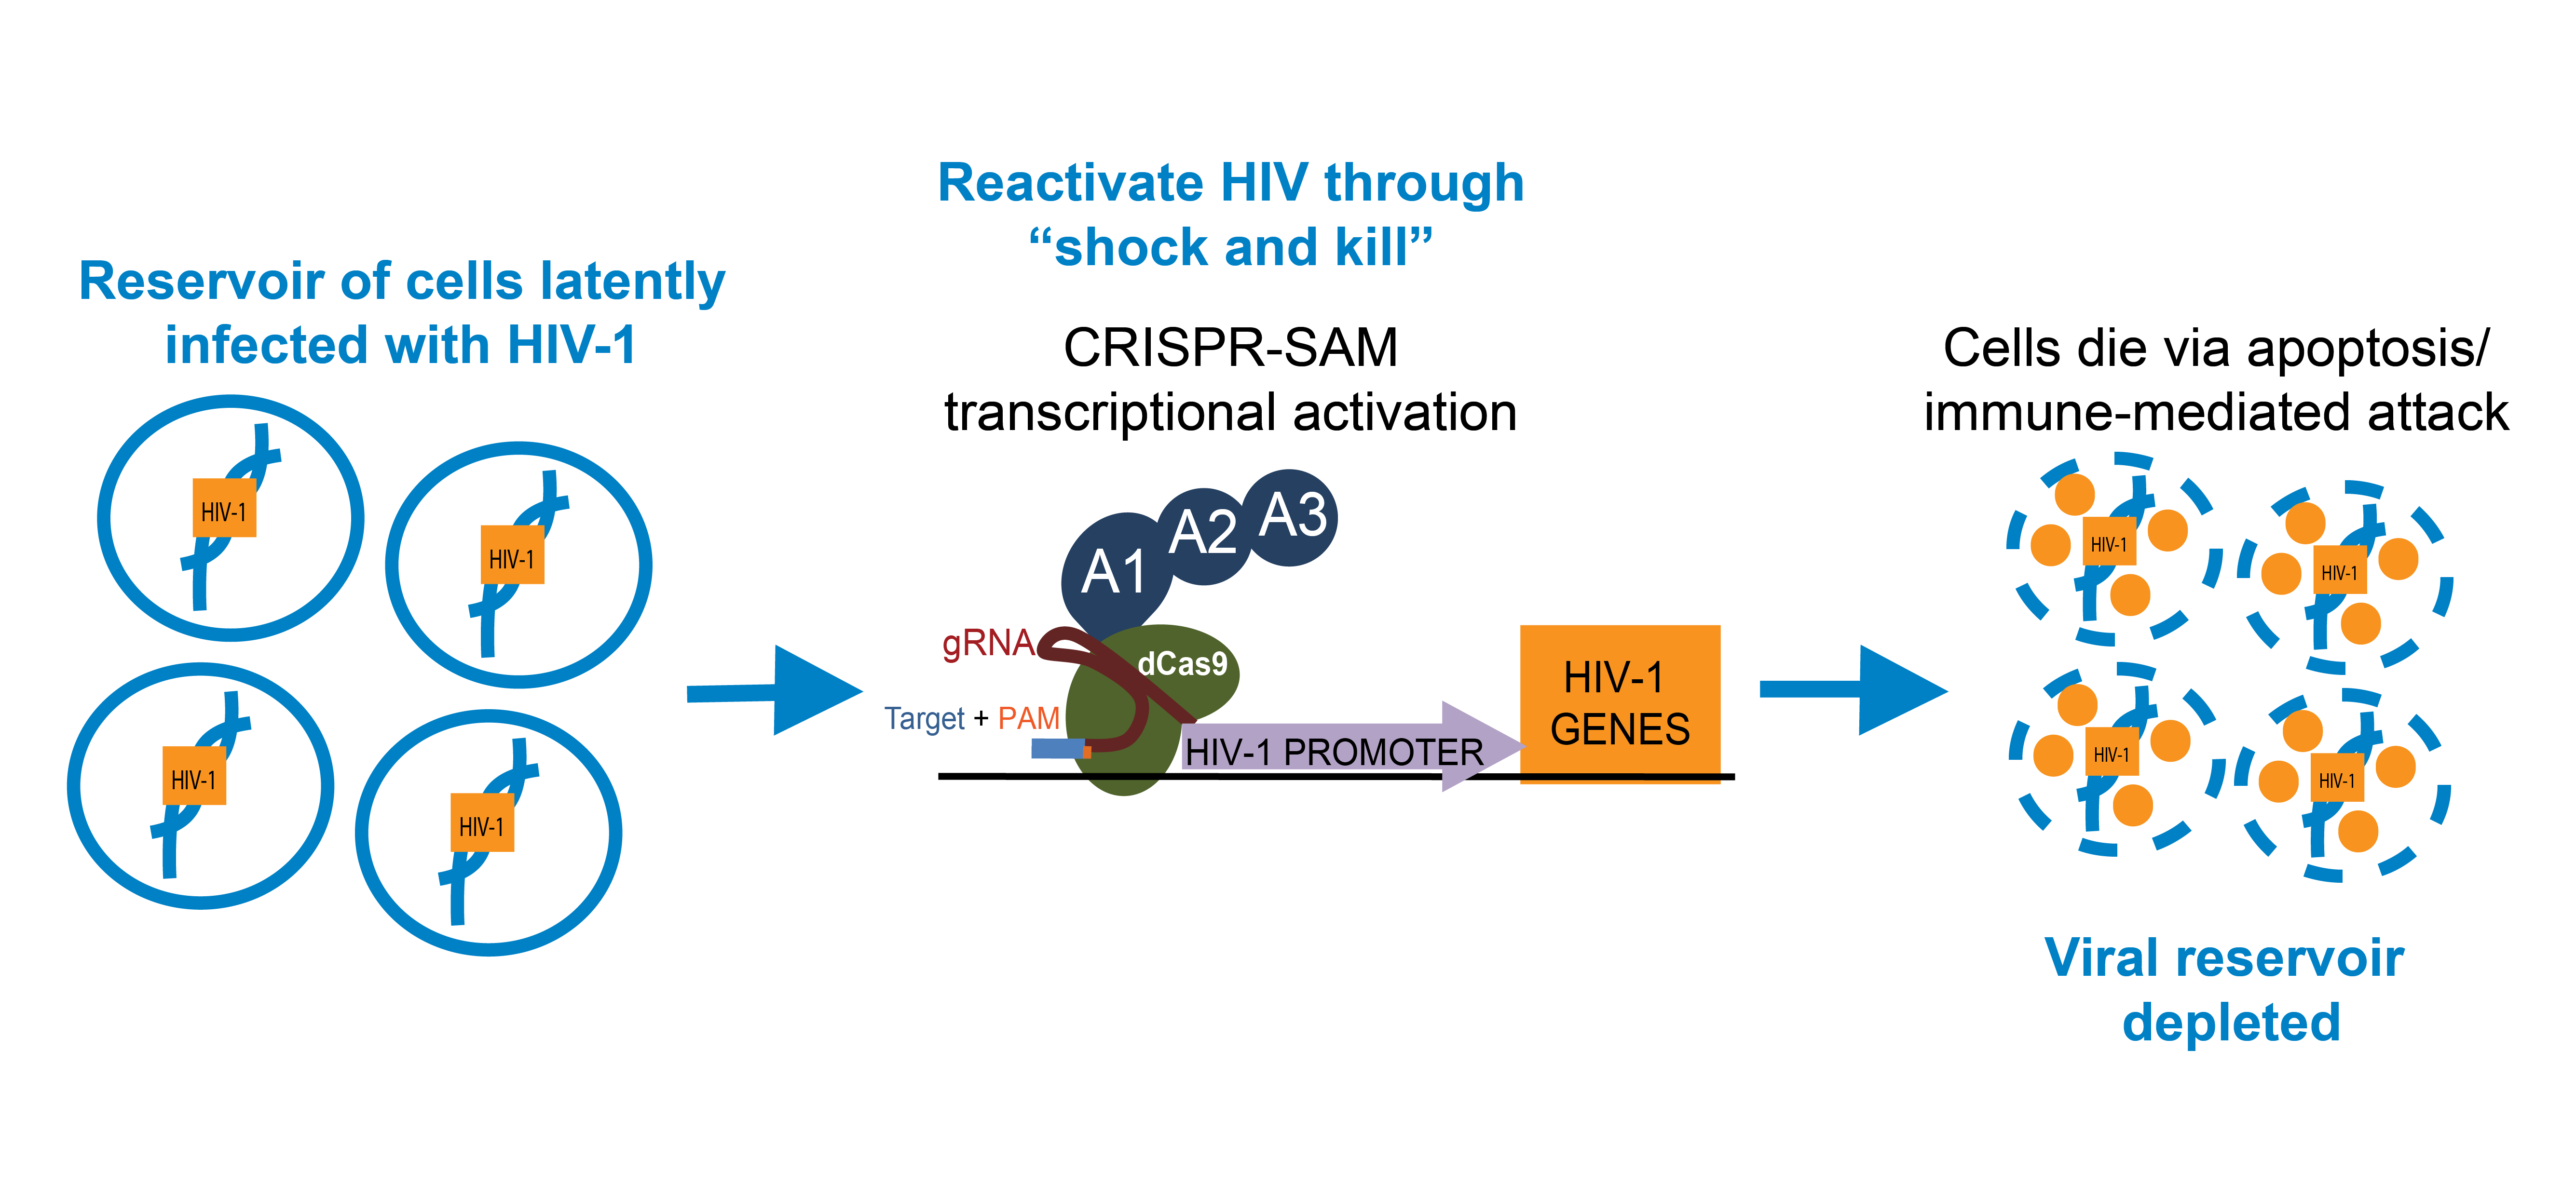 Using Shock and Kill to Fight HIV-1